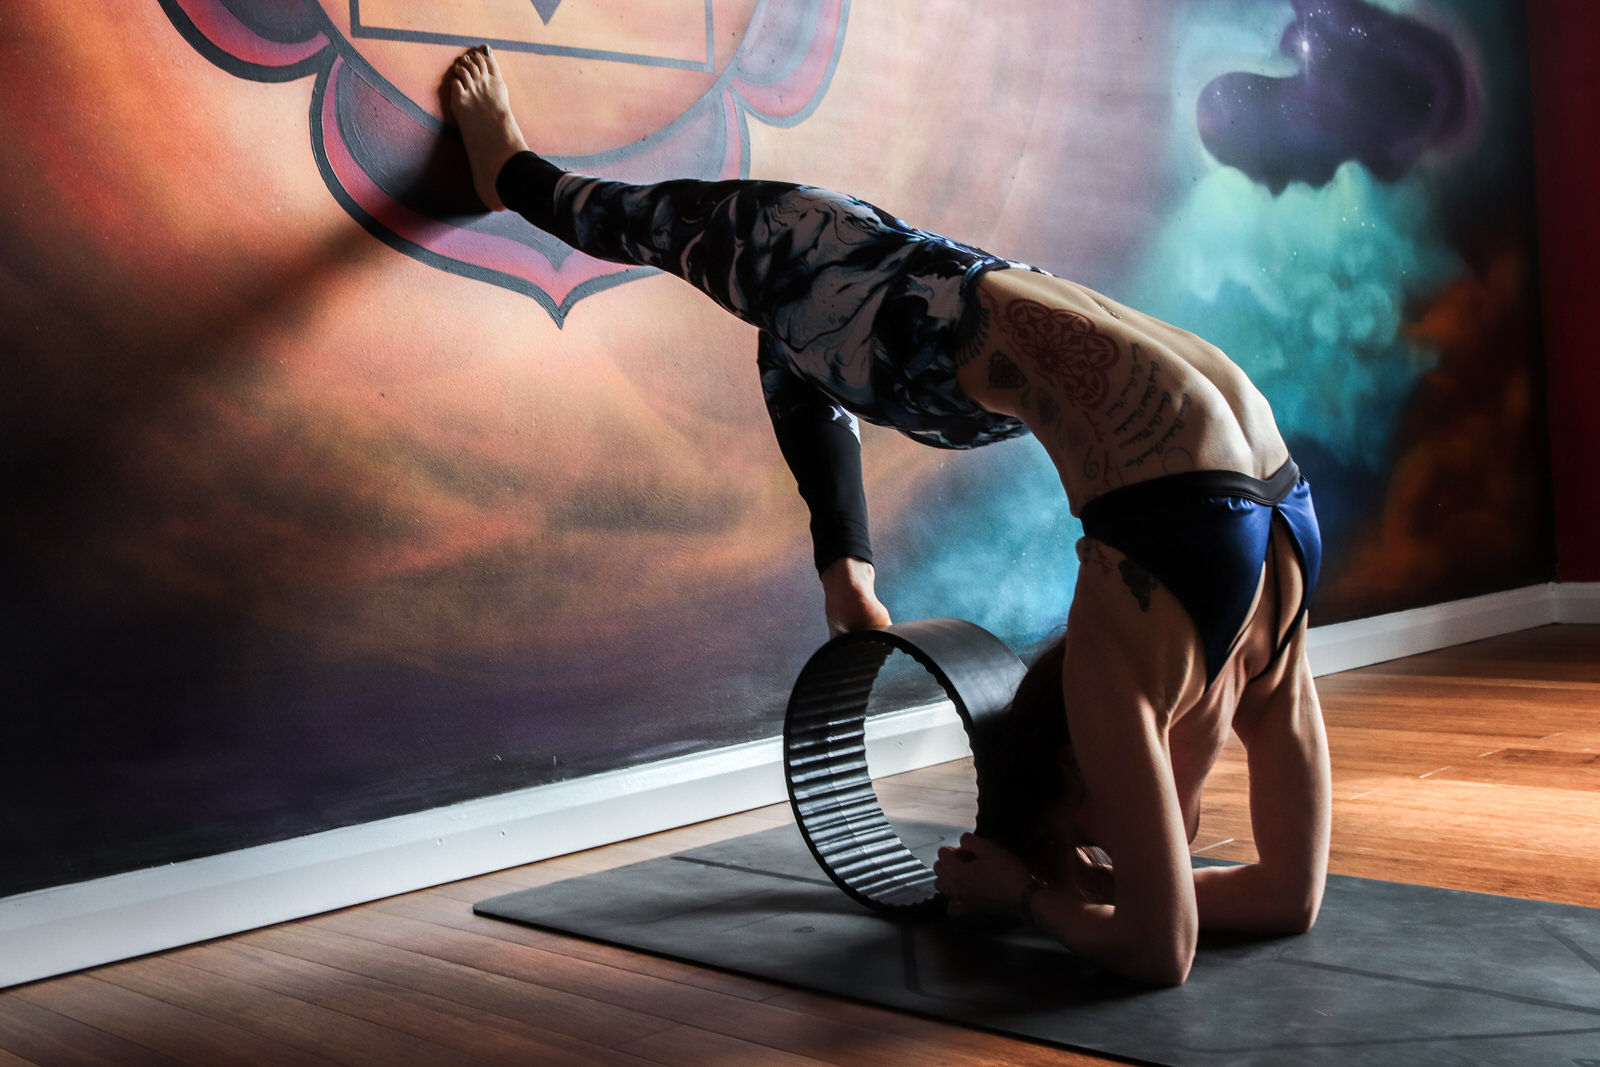 Hot Yoga Sheffield - April 2019 - LR Creative (101)_1.jpg